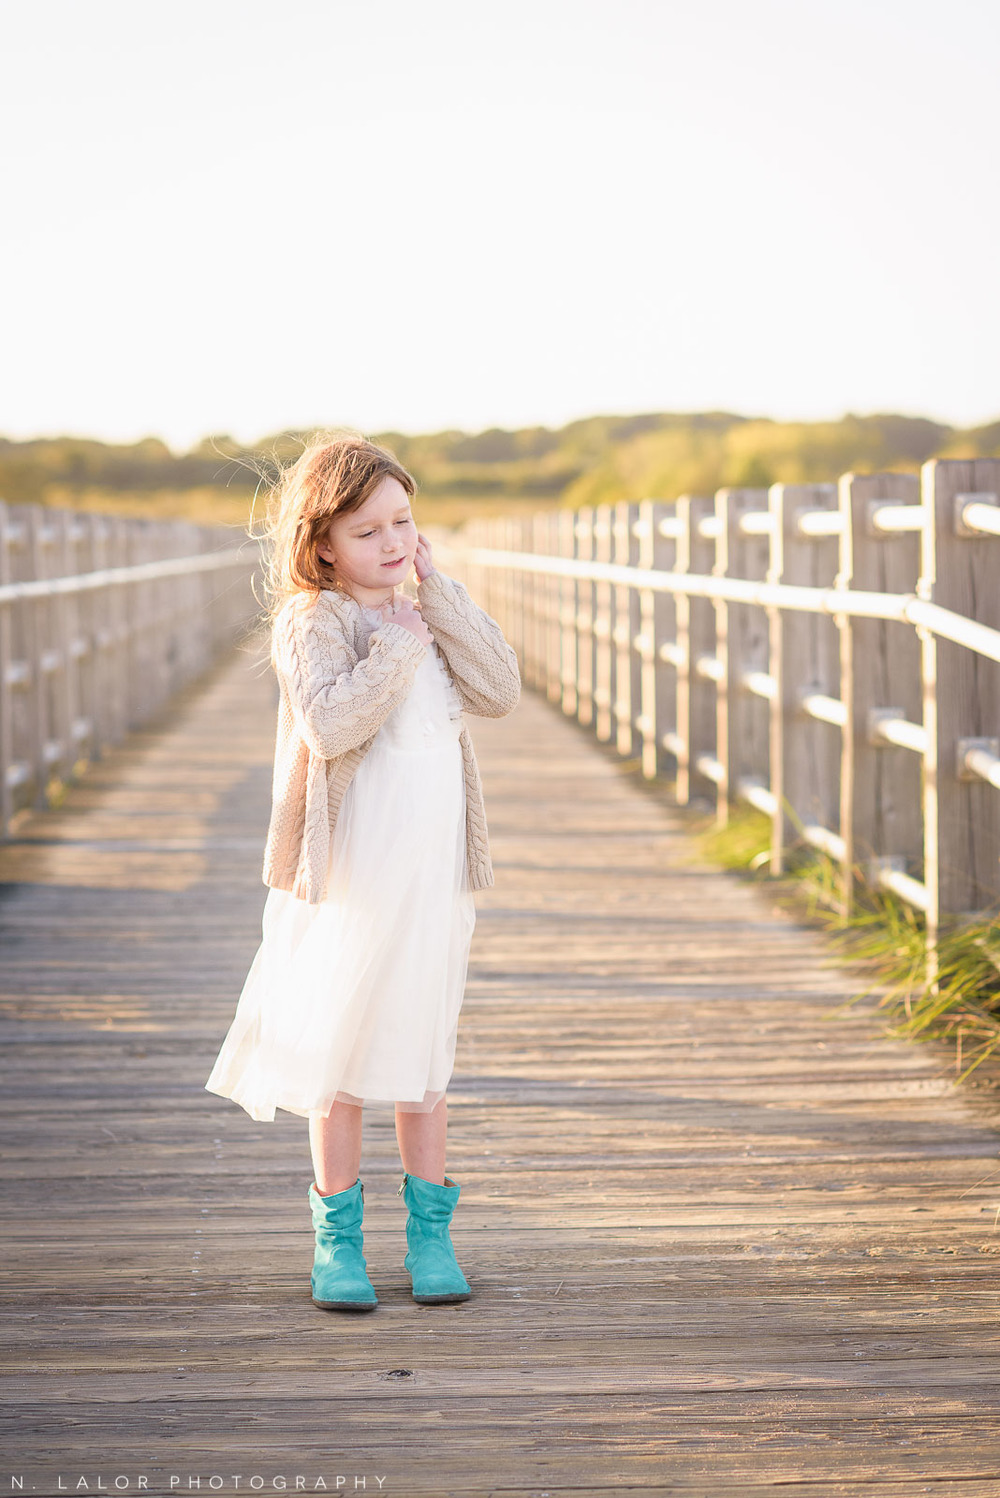 nlalor-photography-2015-10-04-gwen-beach-session-7.jpg